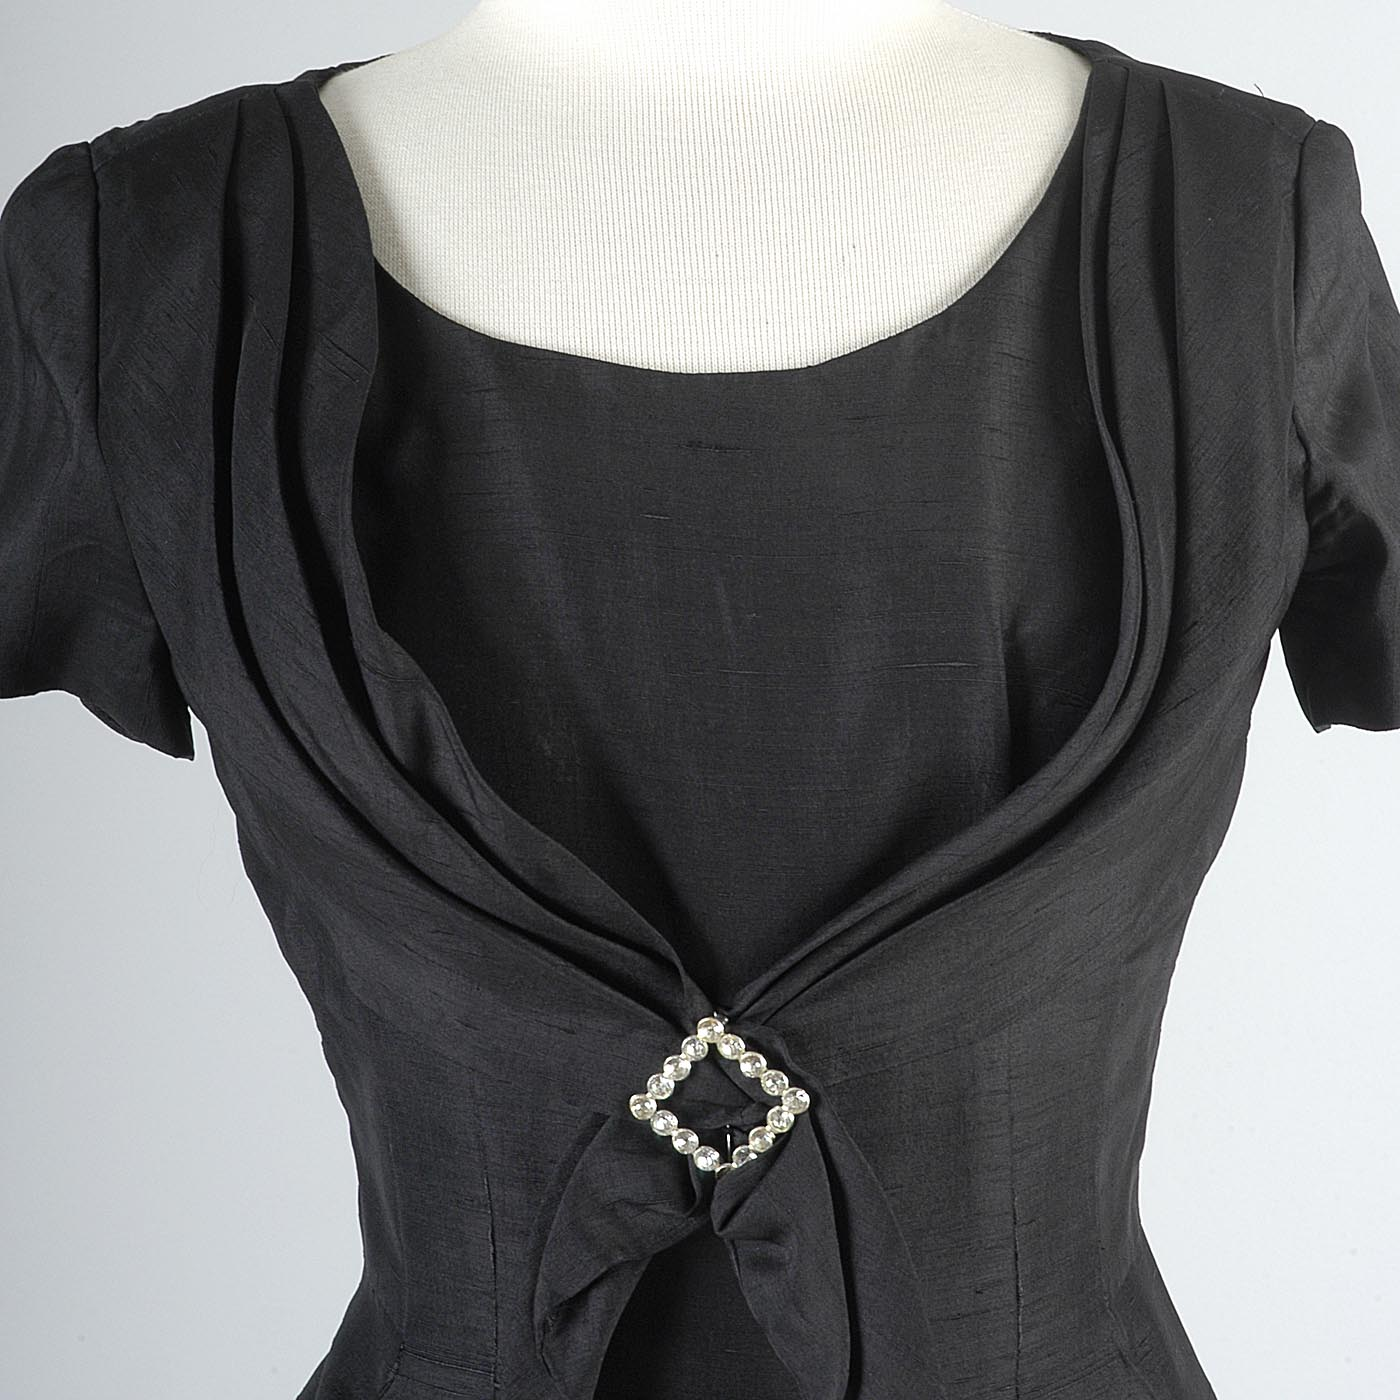 1950s Black Silk Cocktail Dress with Fitted Waist